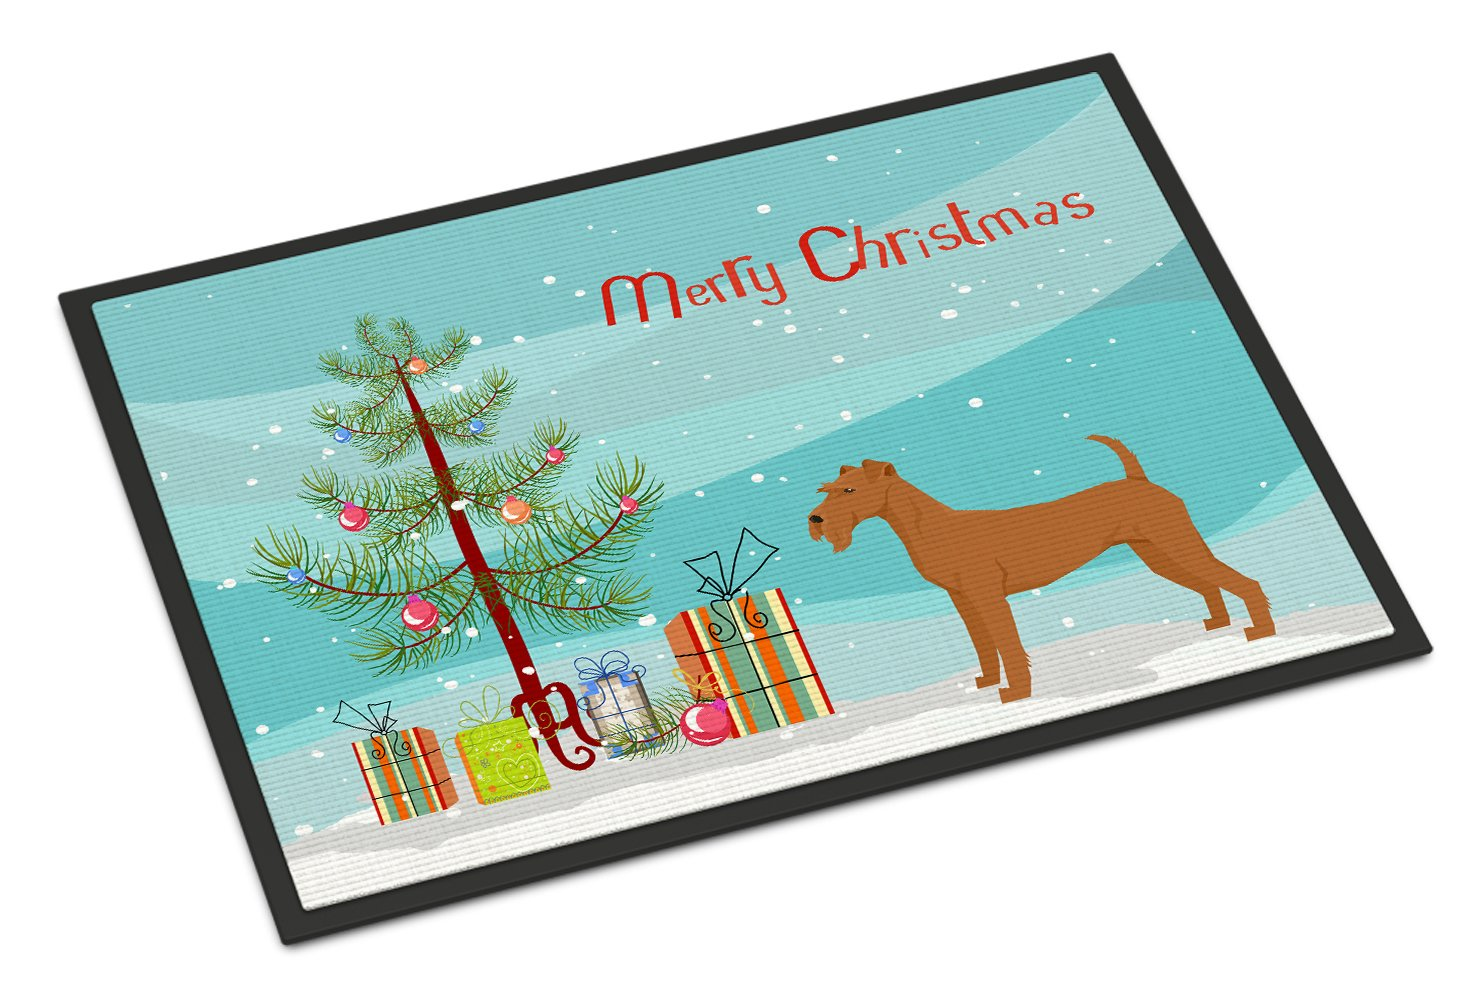 Irish Terrier Christmas Tree Indoor or Outdoor Mat 24x36 CK3546JMAT by Caroline's Treasures